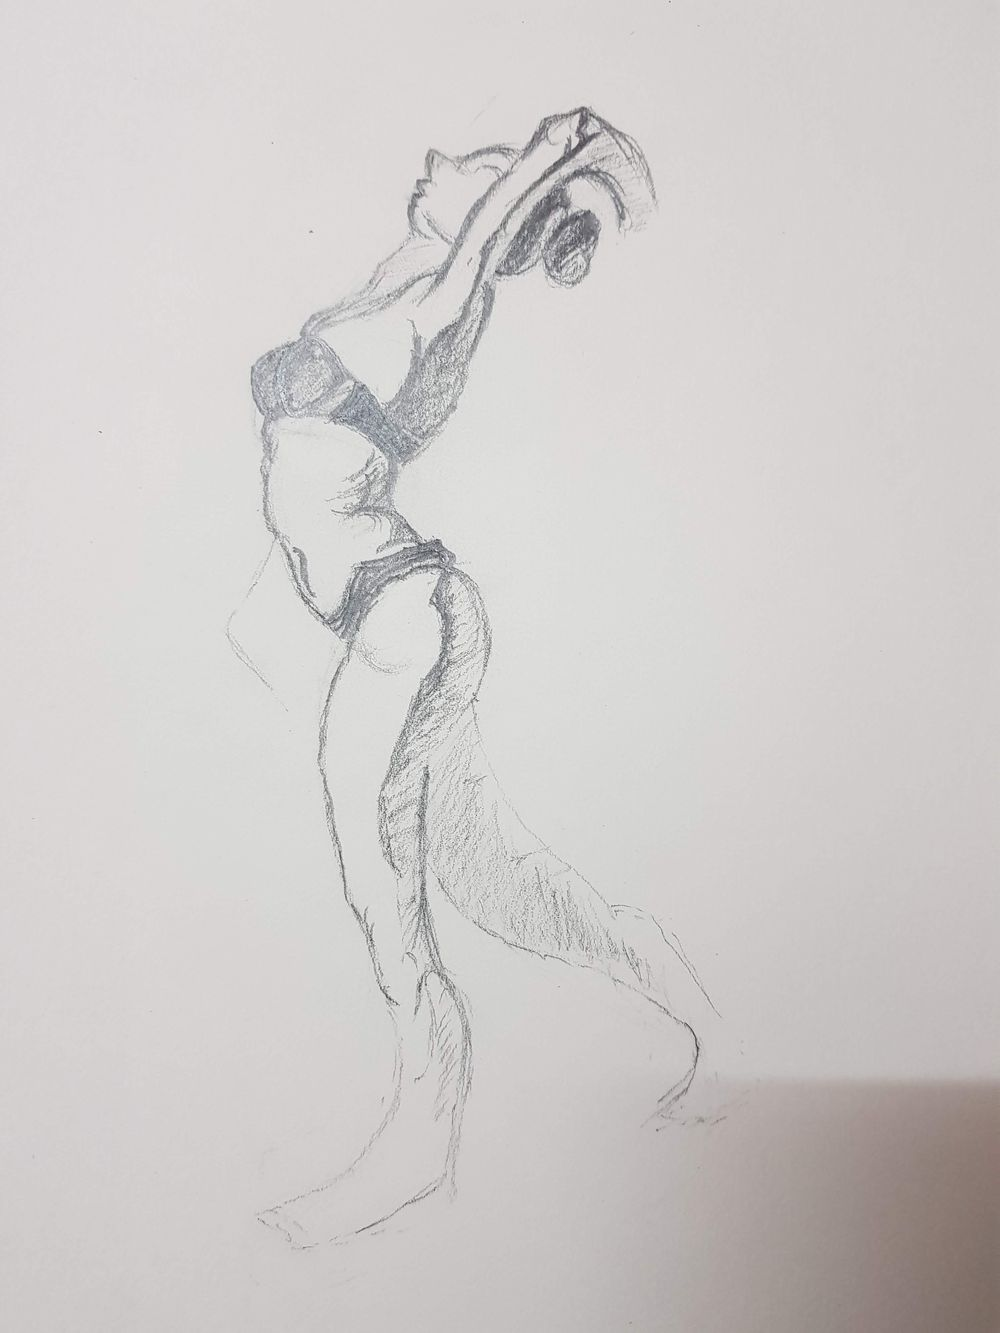 The Basic Skills - The Art & Science of Drawing - image 2 - student project